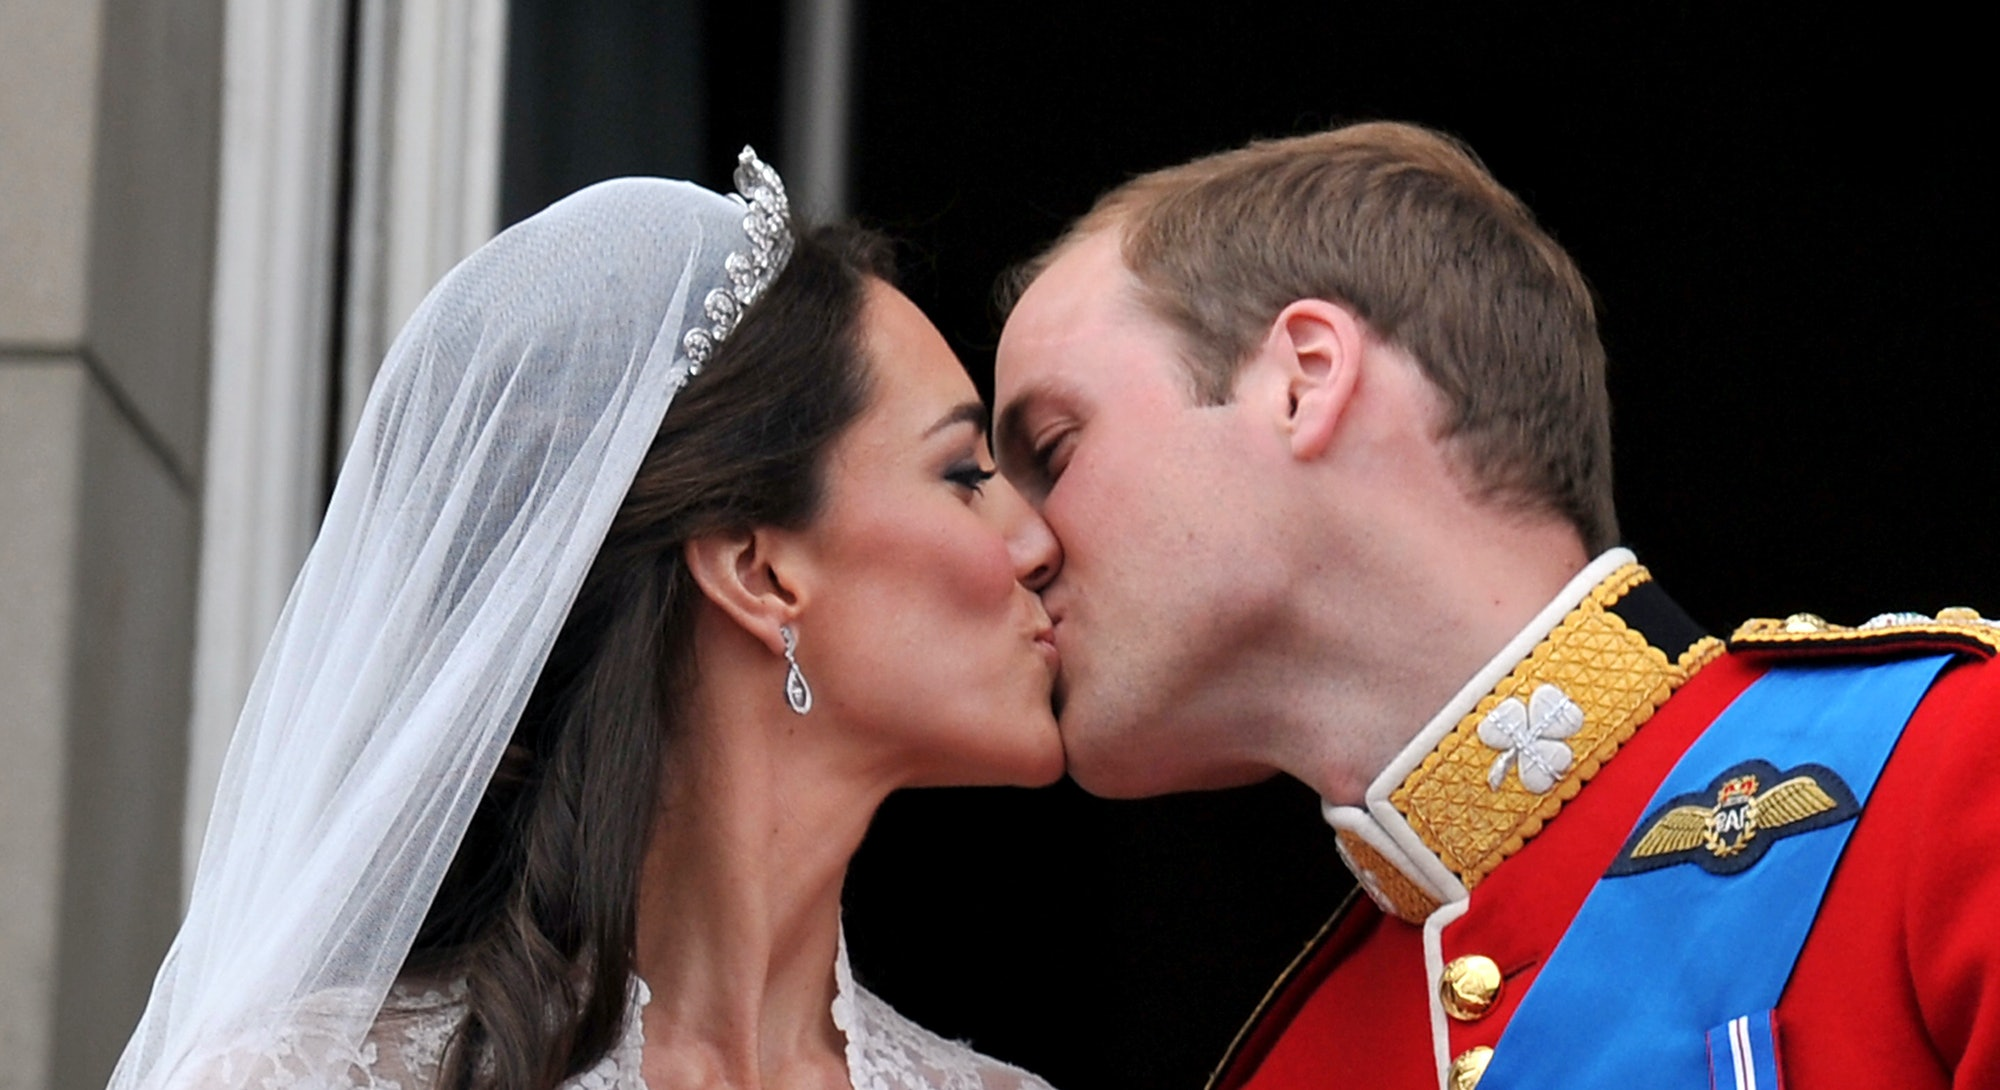 Prince William and his wife Kate Middleton, who has been given the title of The Duchess of Cambridge, kiss on the balcony of Buckingham Palace, London, following their wedding at Westminster Abbey.   (Photo by John Stillwell/PA Images via Getty Images)